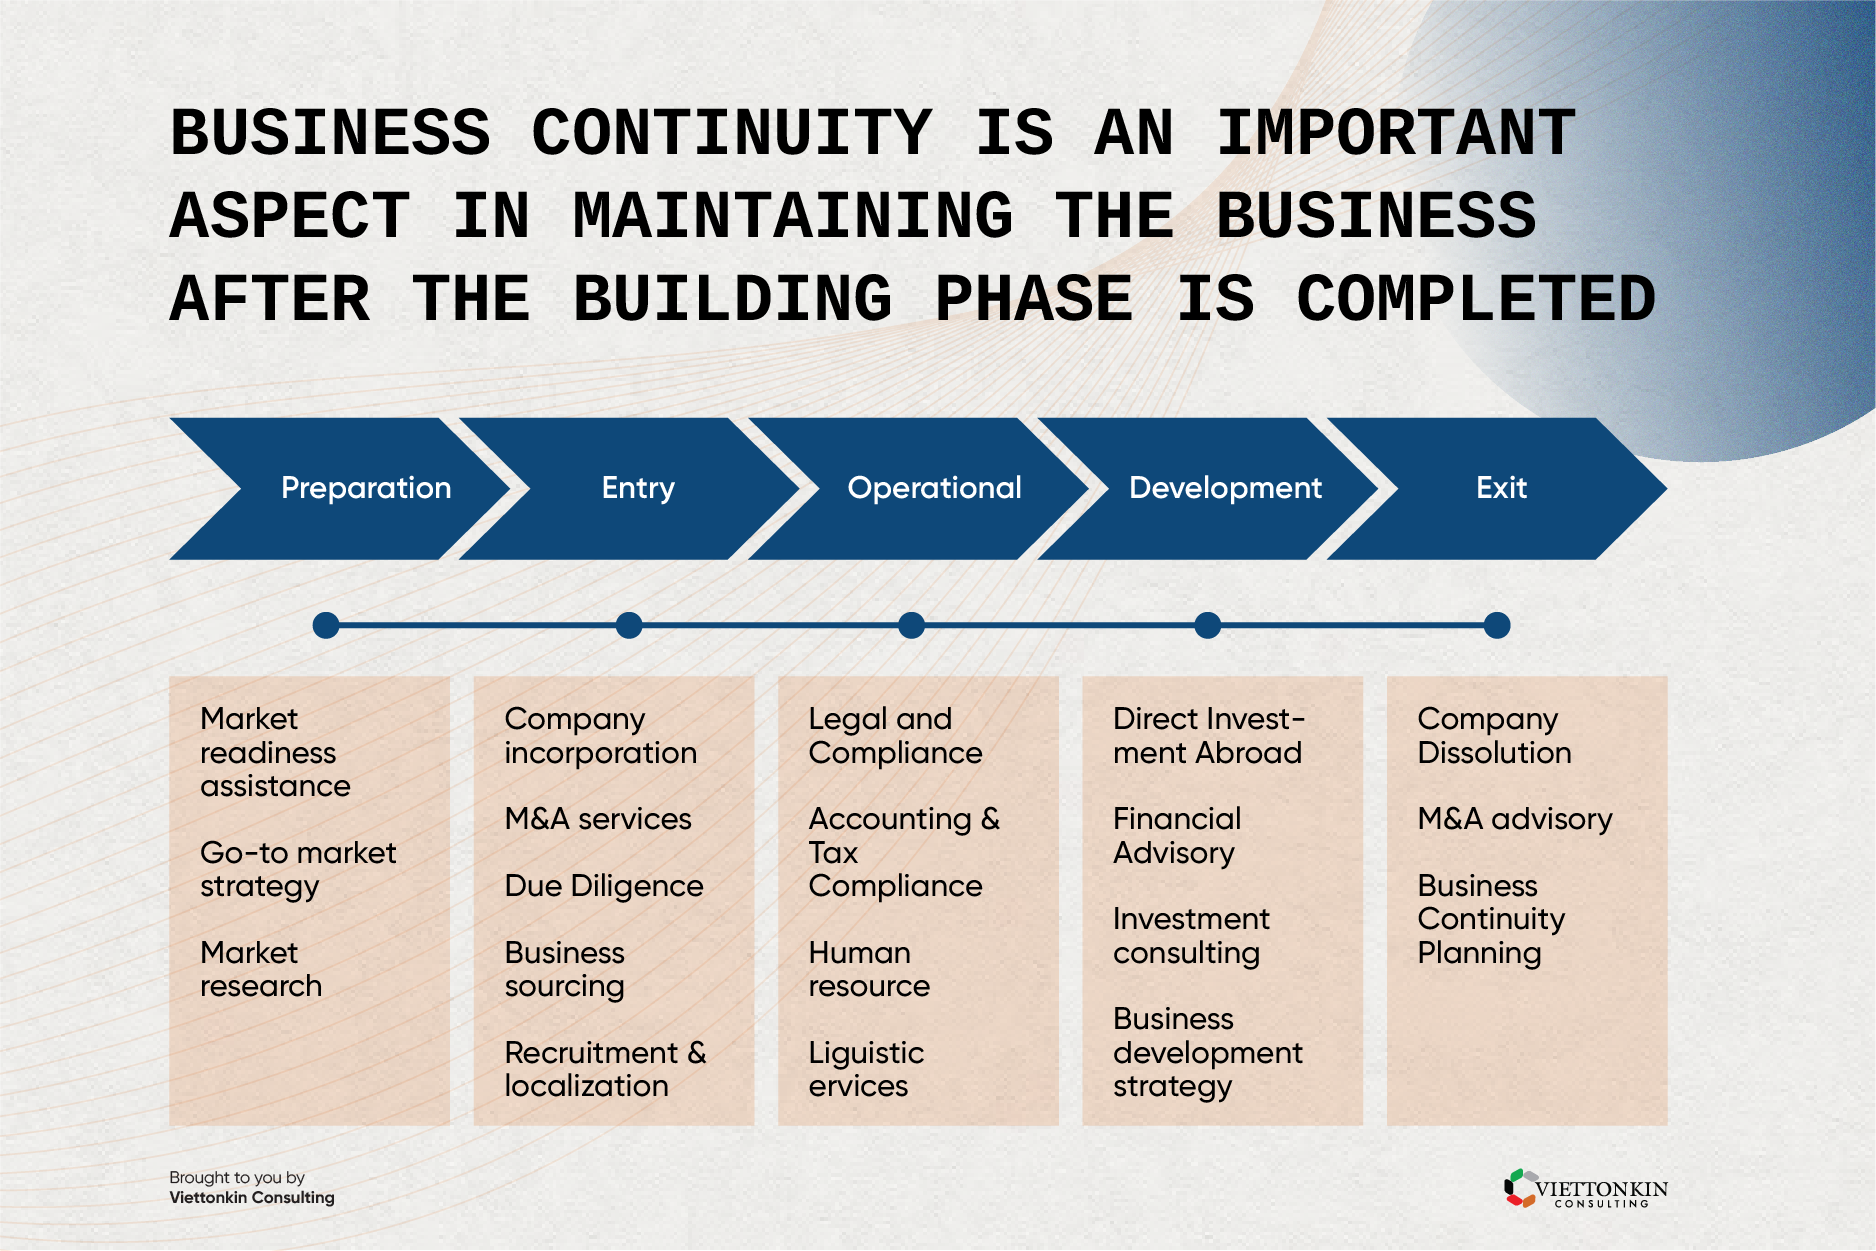 Business continuity plan to maintain businesses